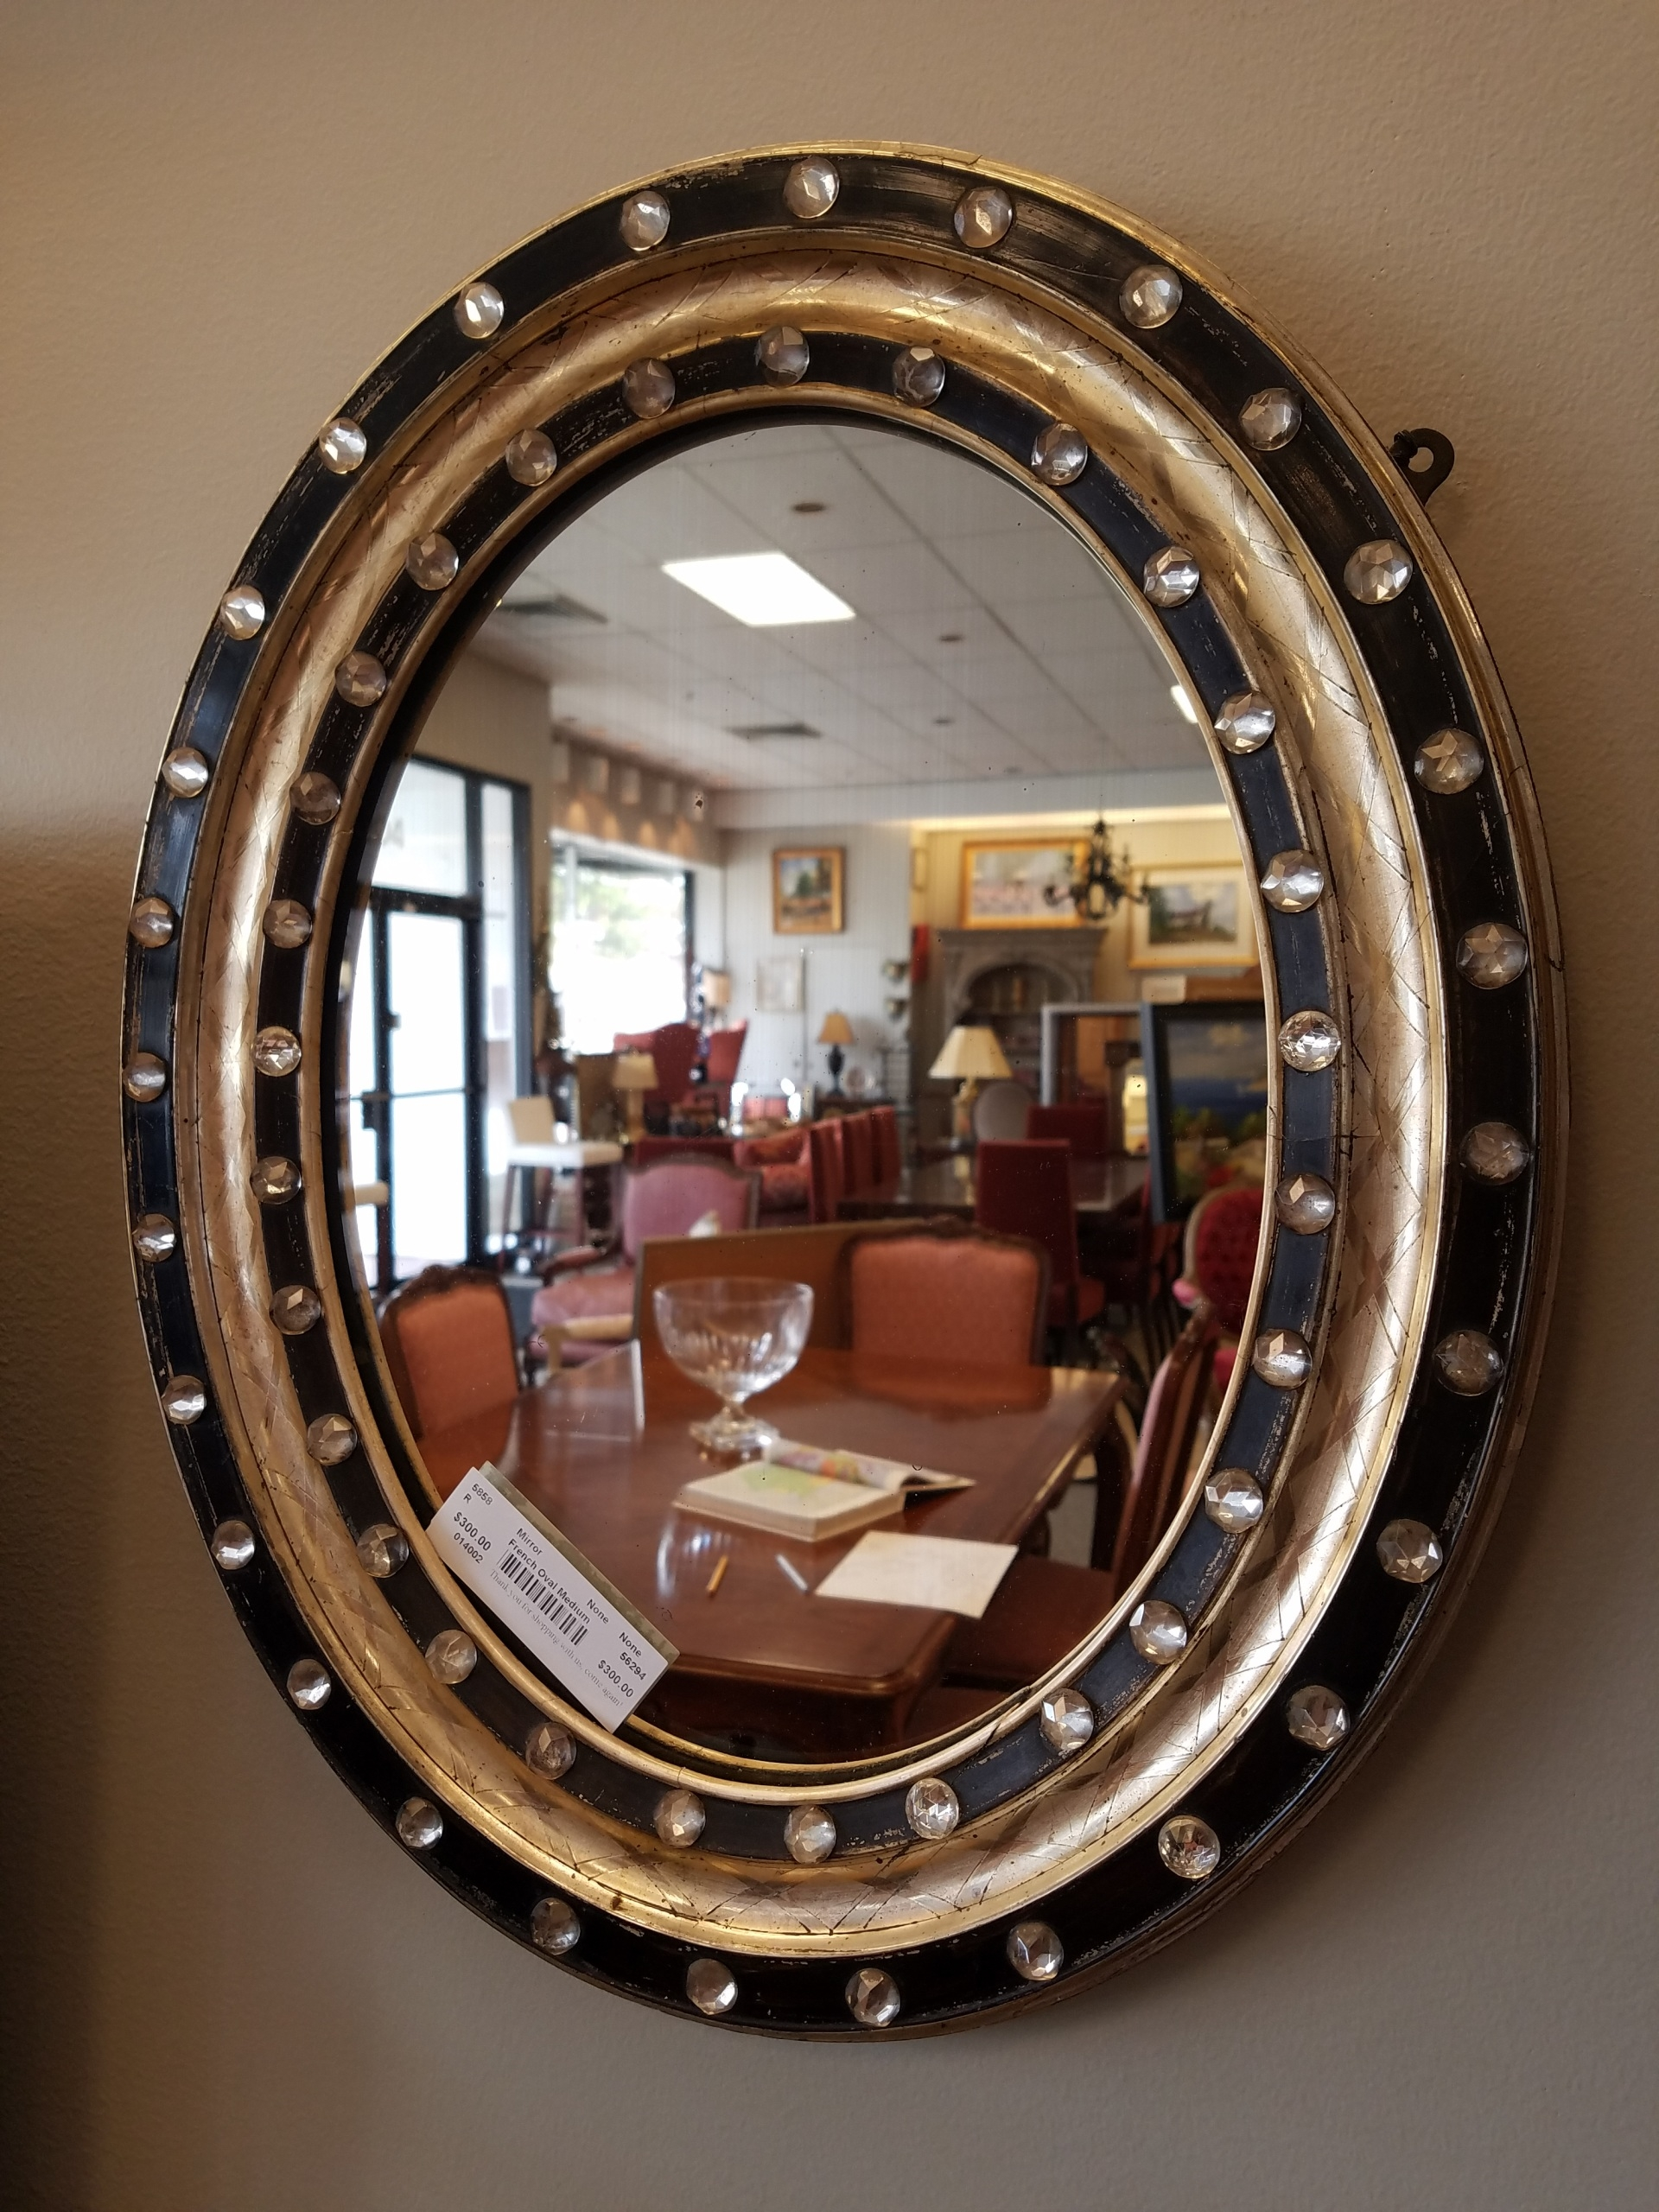 French Oval Mirror Within French Oval Mirror (Image 11 of 15)